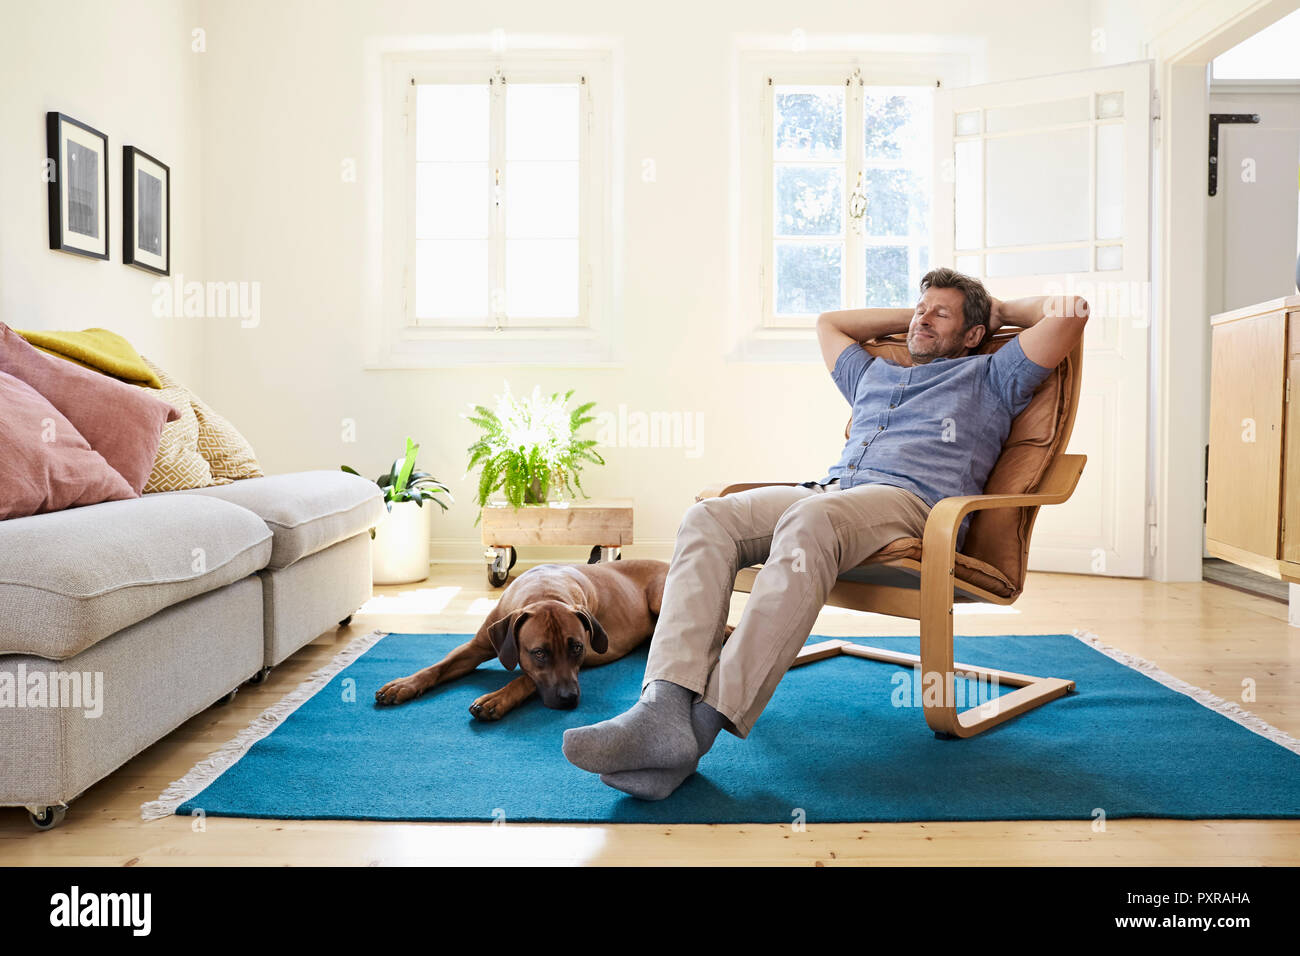 Man relaxing at home with his dog by his side - Stock Image